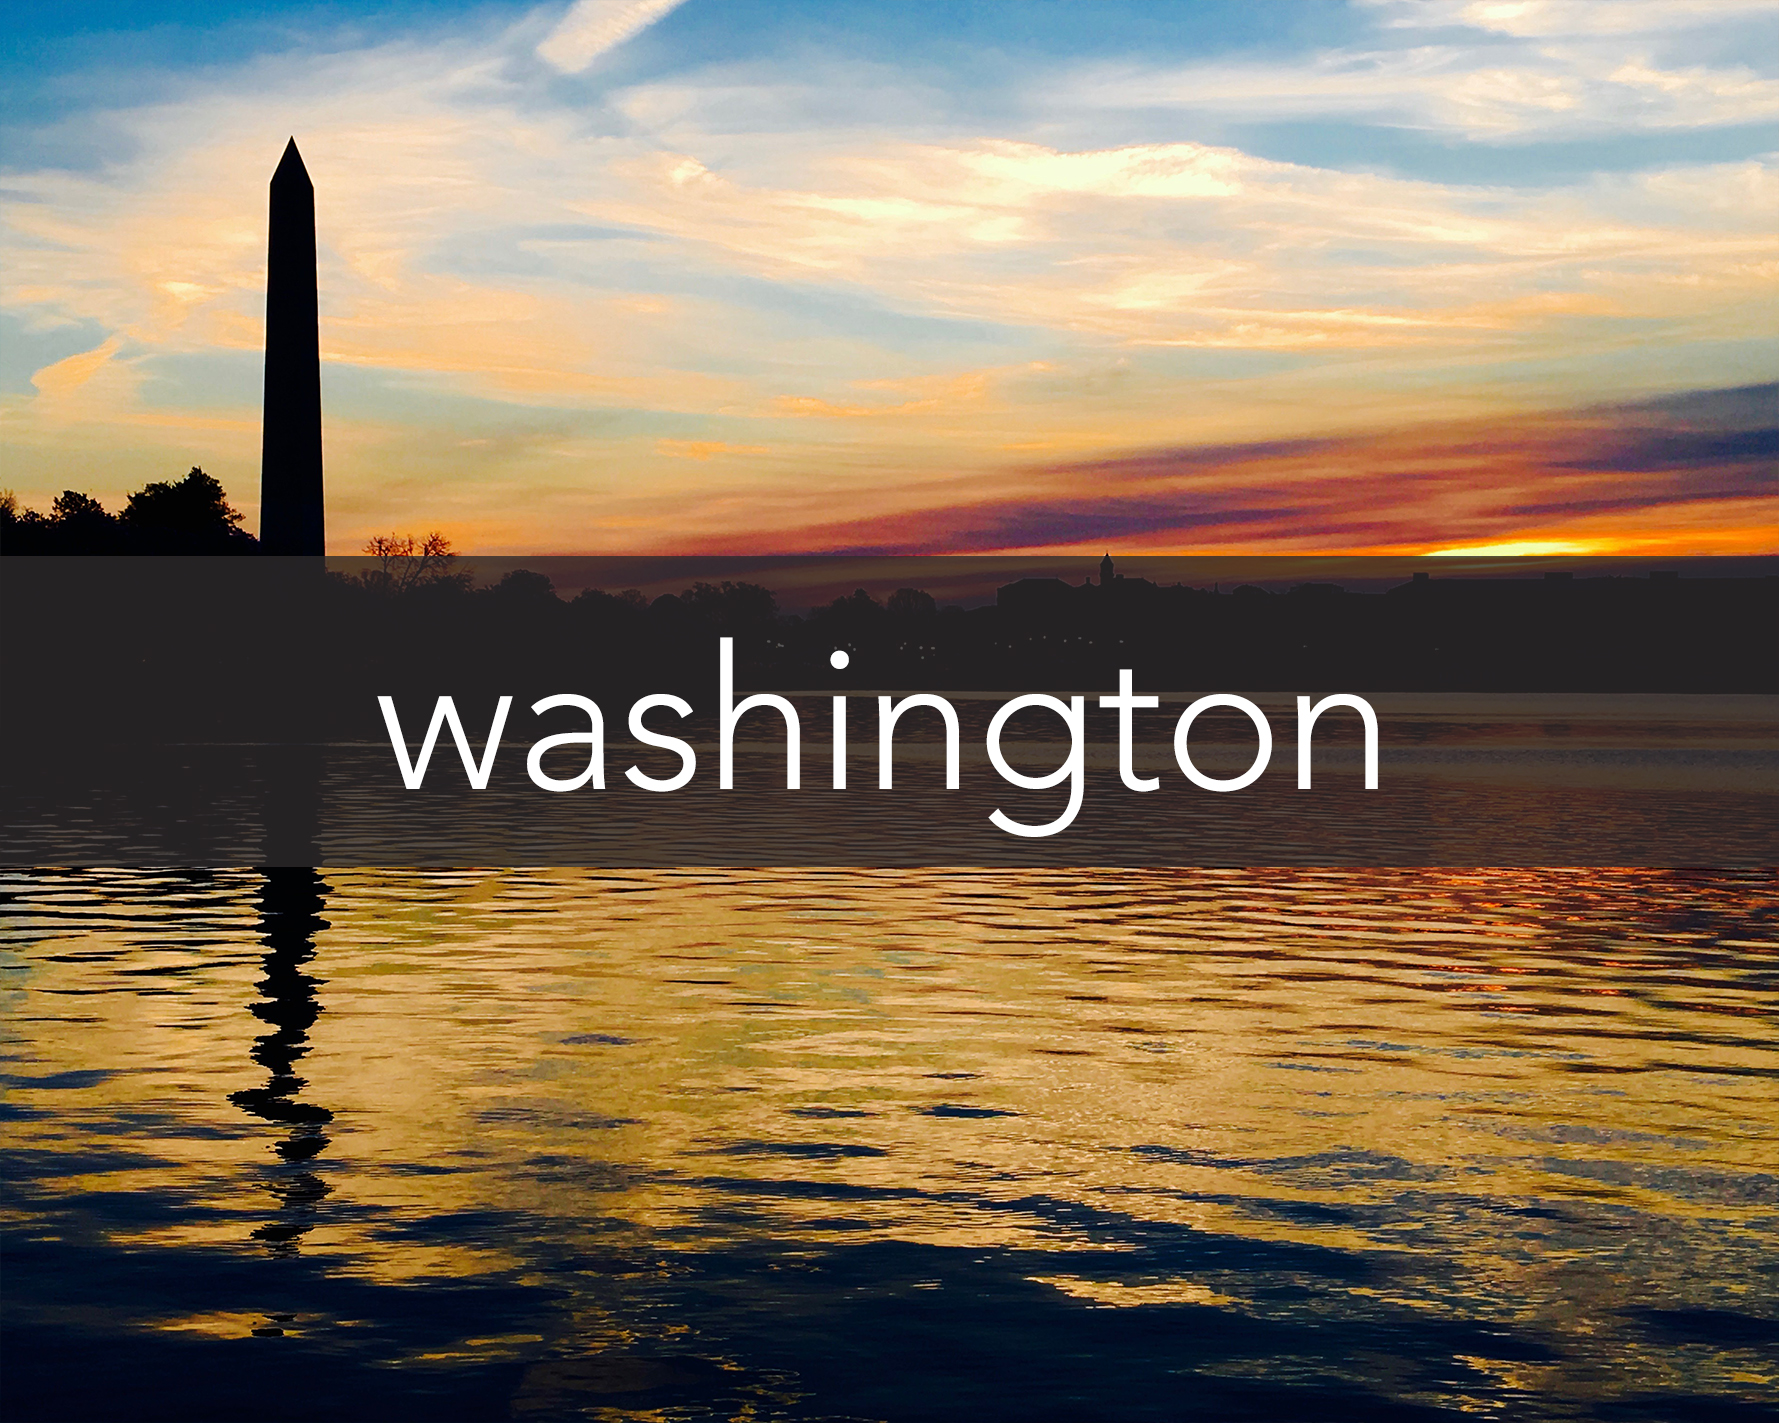 Washington.jpg